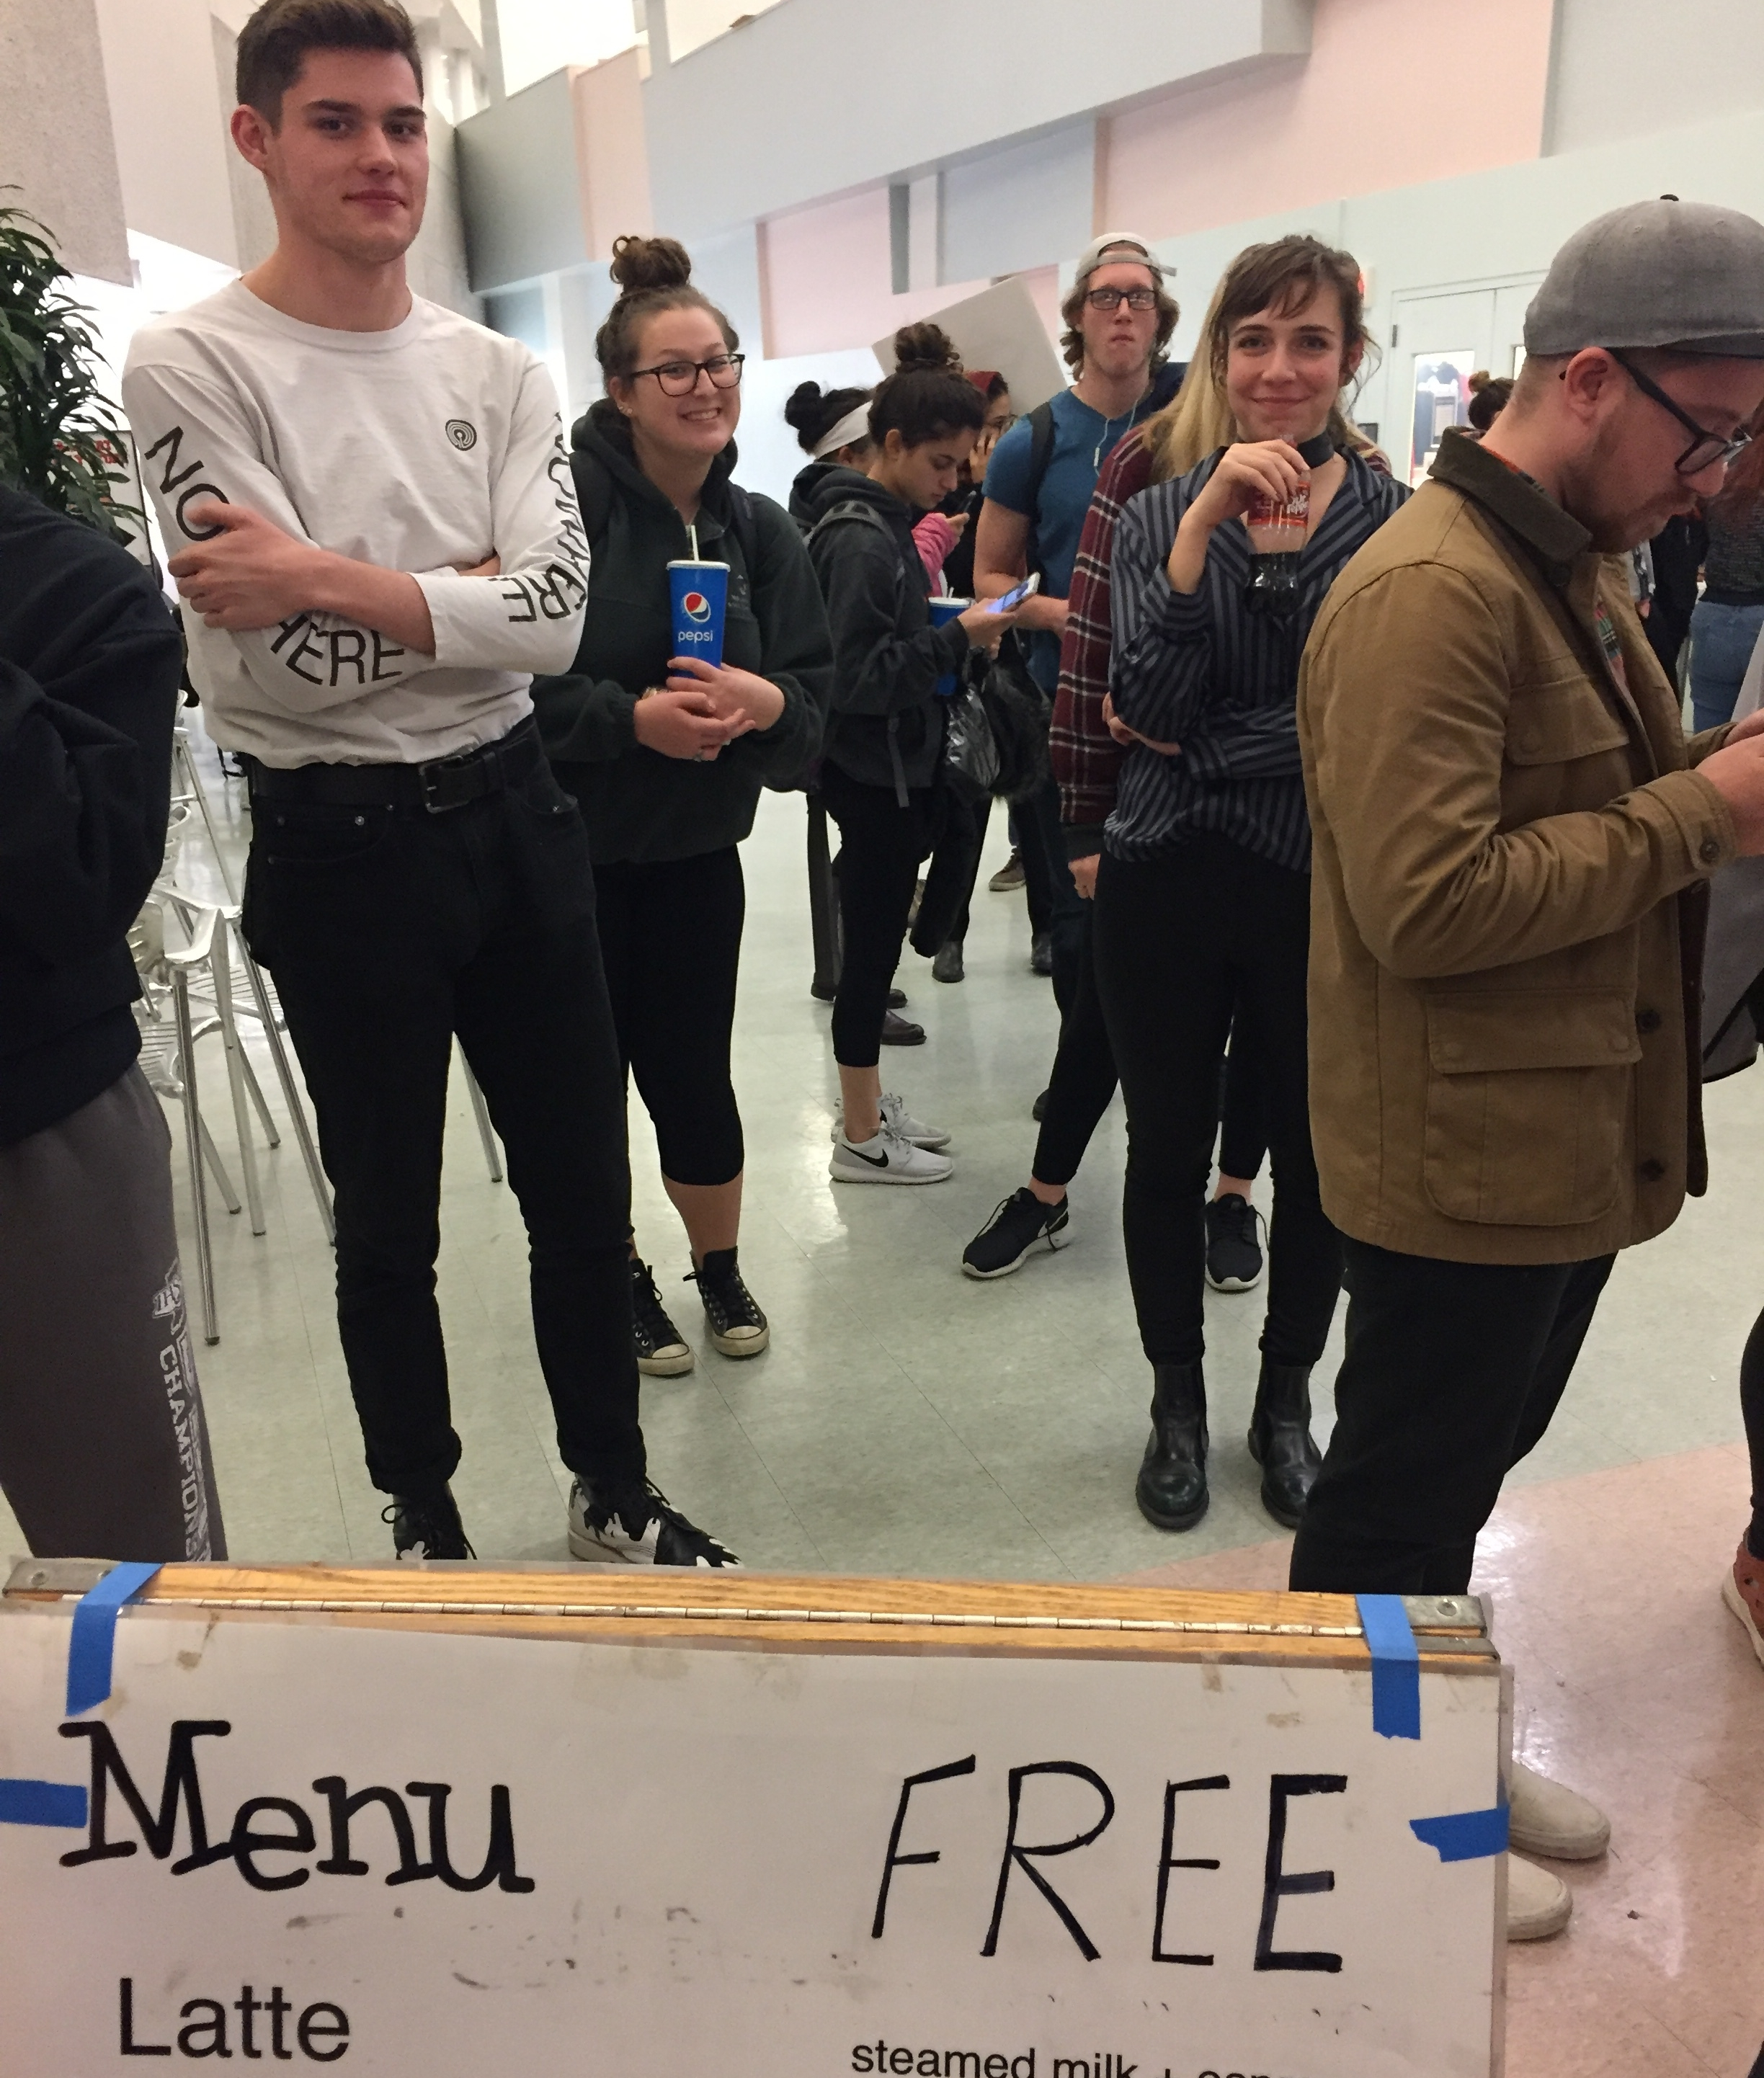 Some friends waiting in line for high-quality espresso at our semesterly late-night coffee event at DAAP. Photo by Alice Connor.